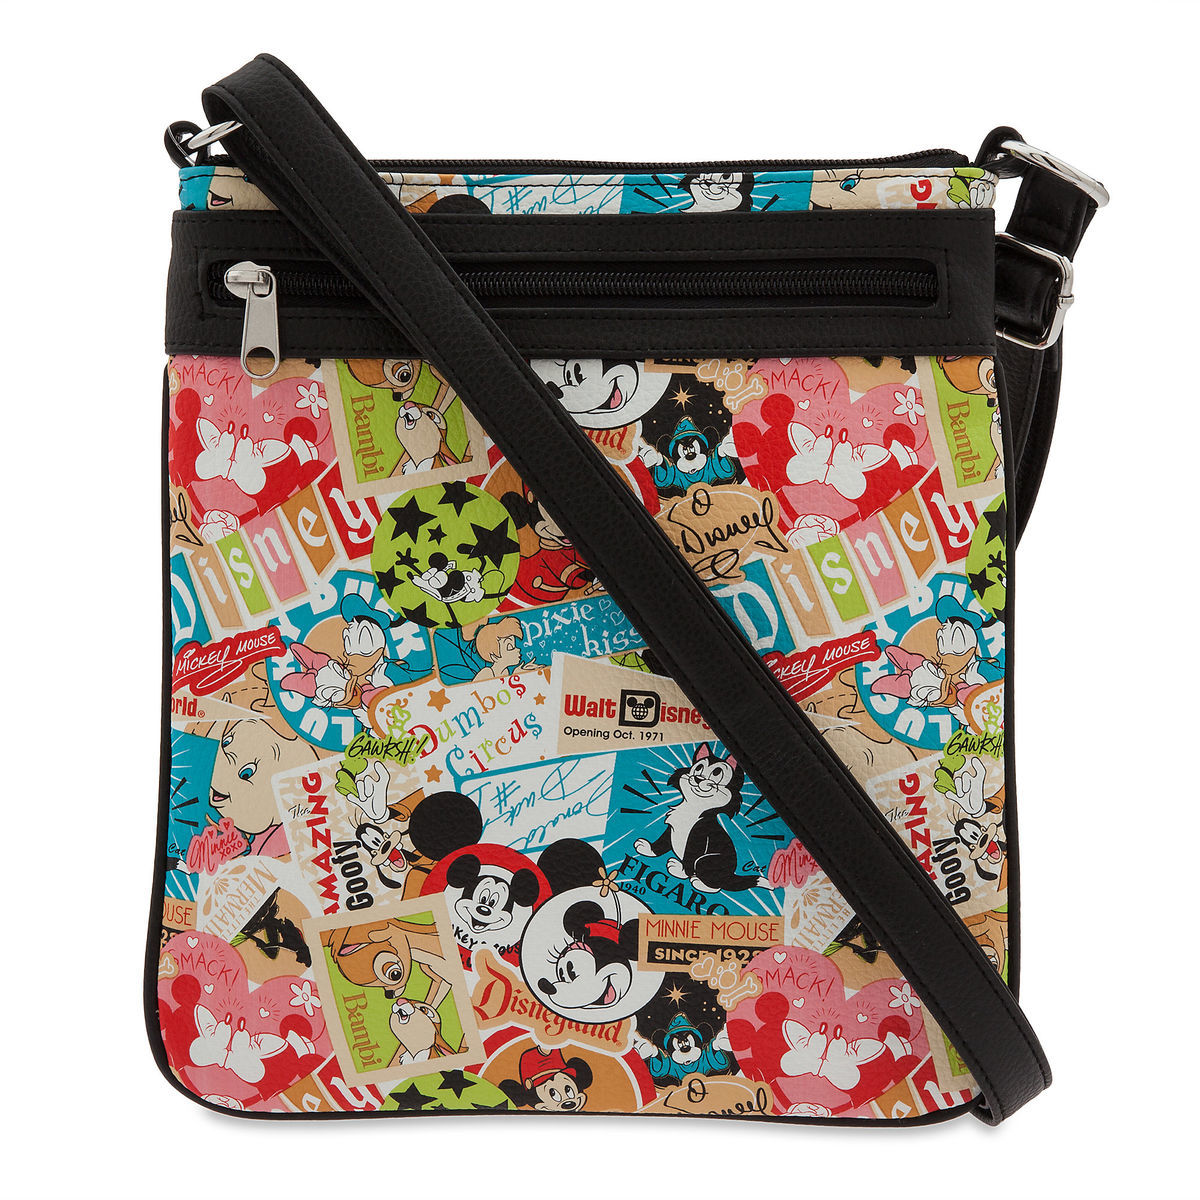 Product Image Of Disney Parks Classic Collage Crossbody Bag 1